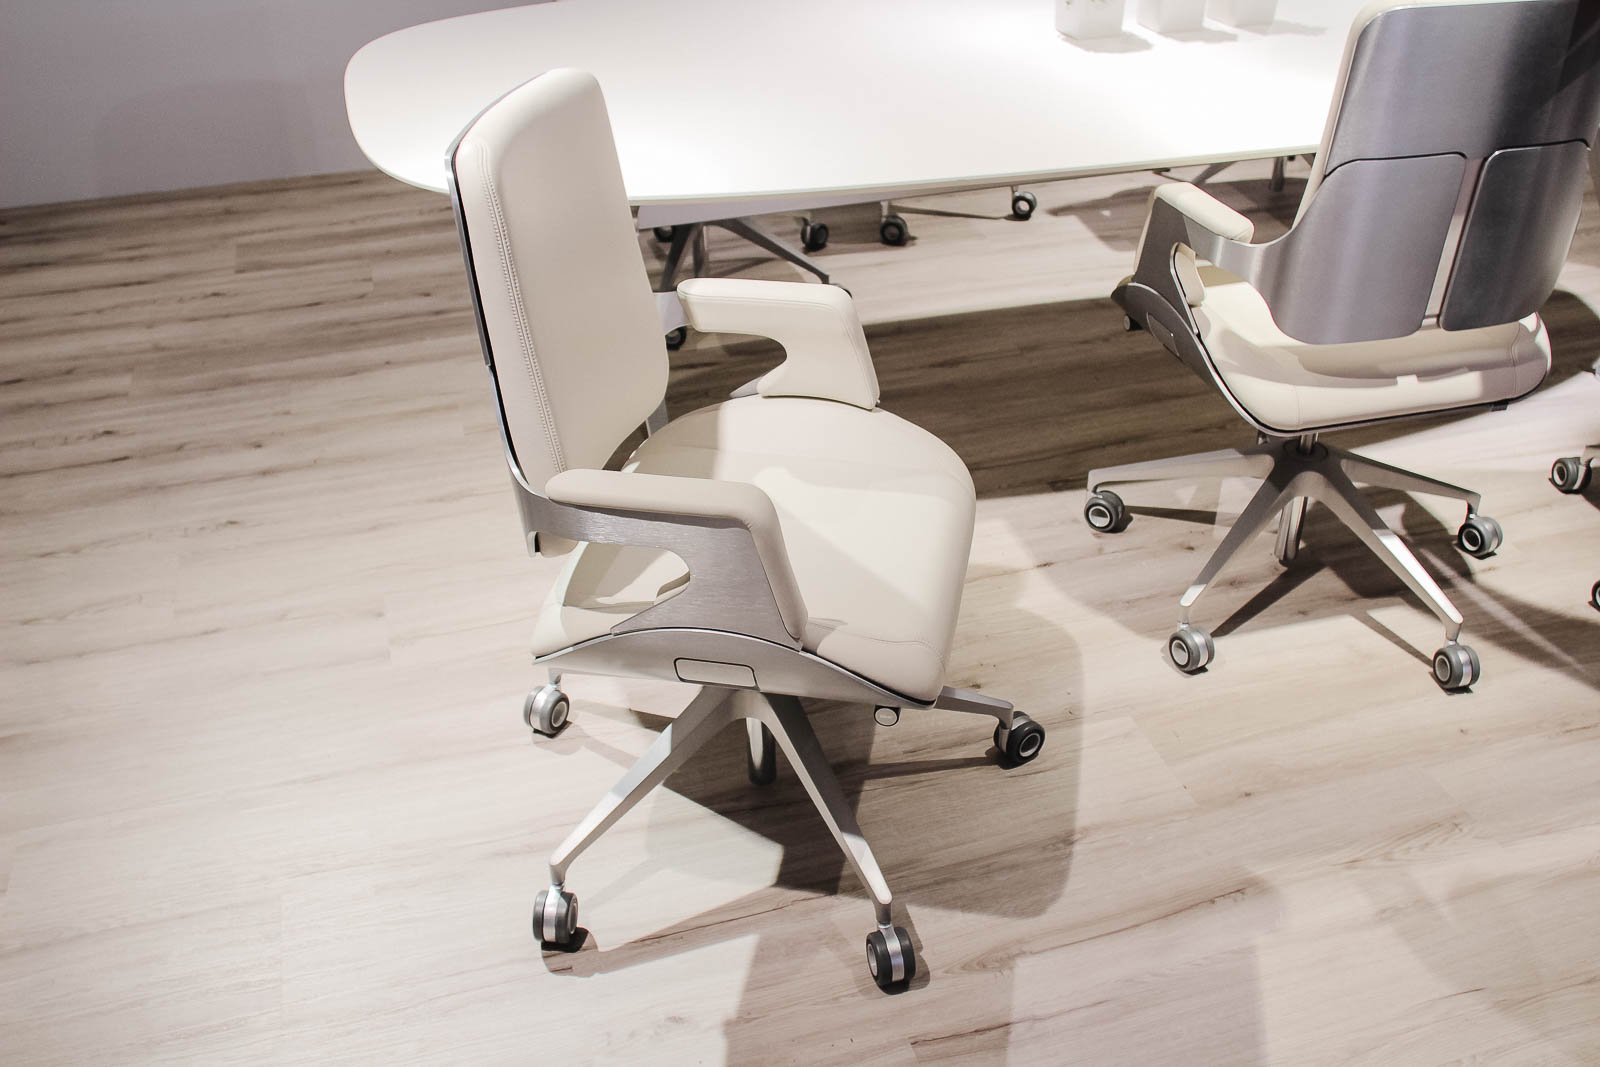 Offset the office chair against tax 3